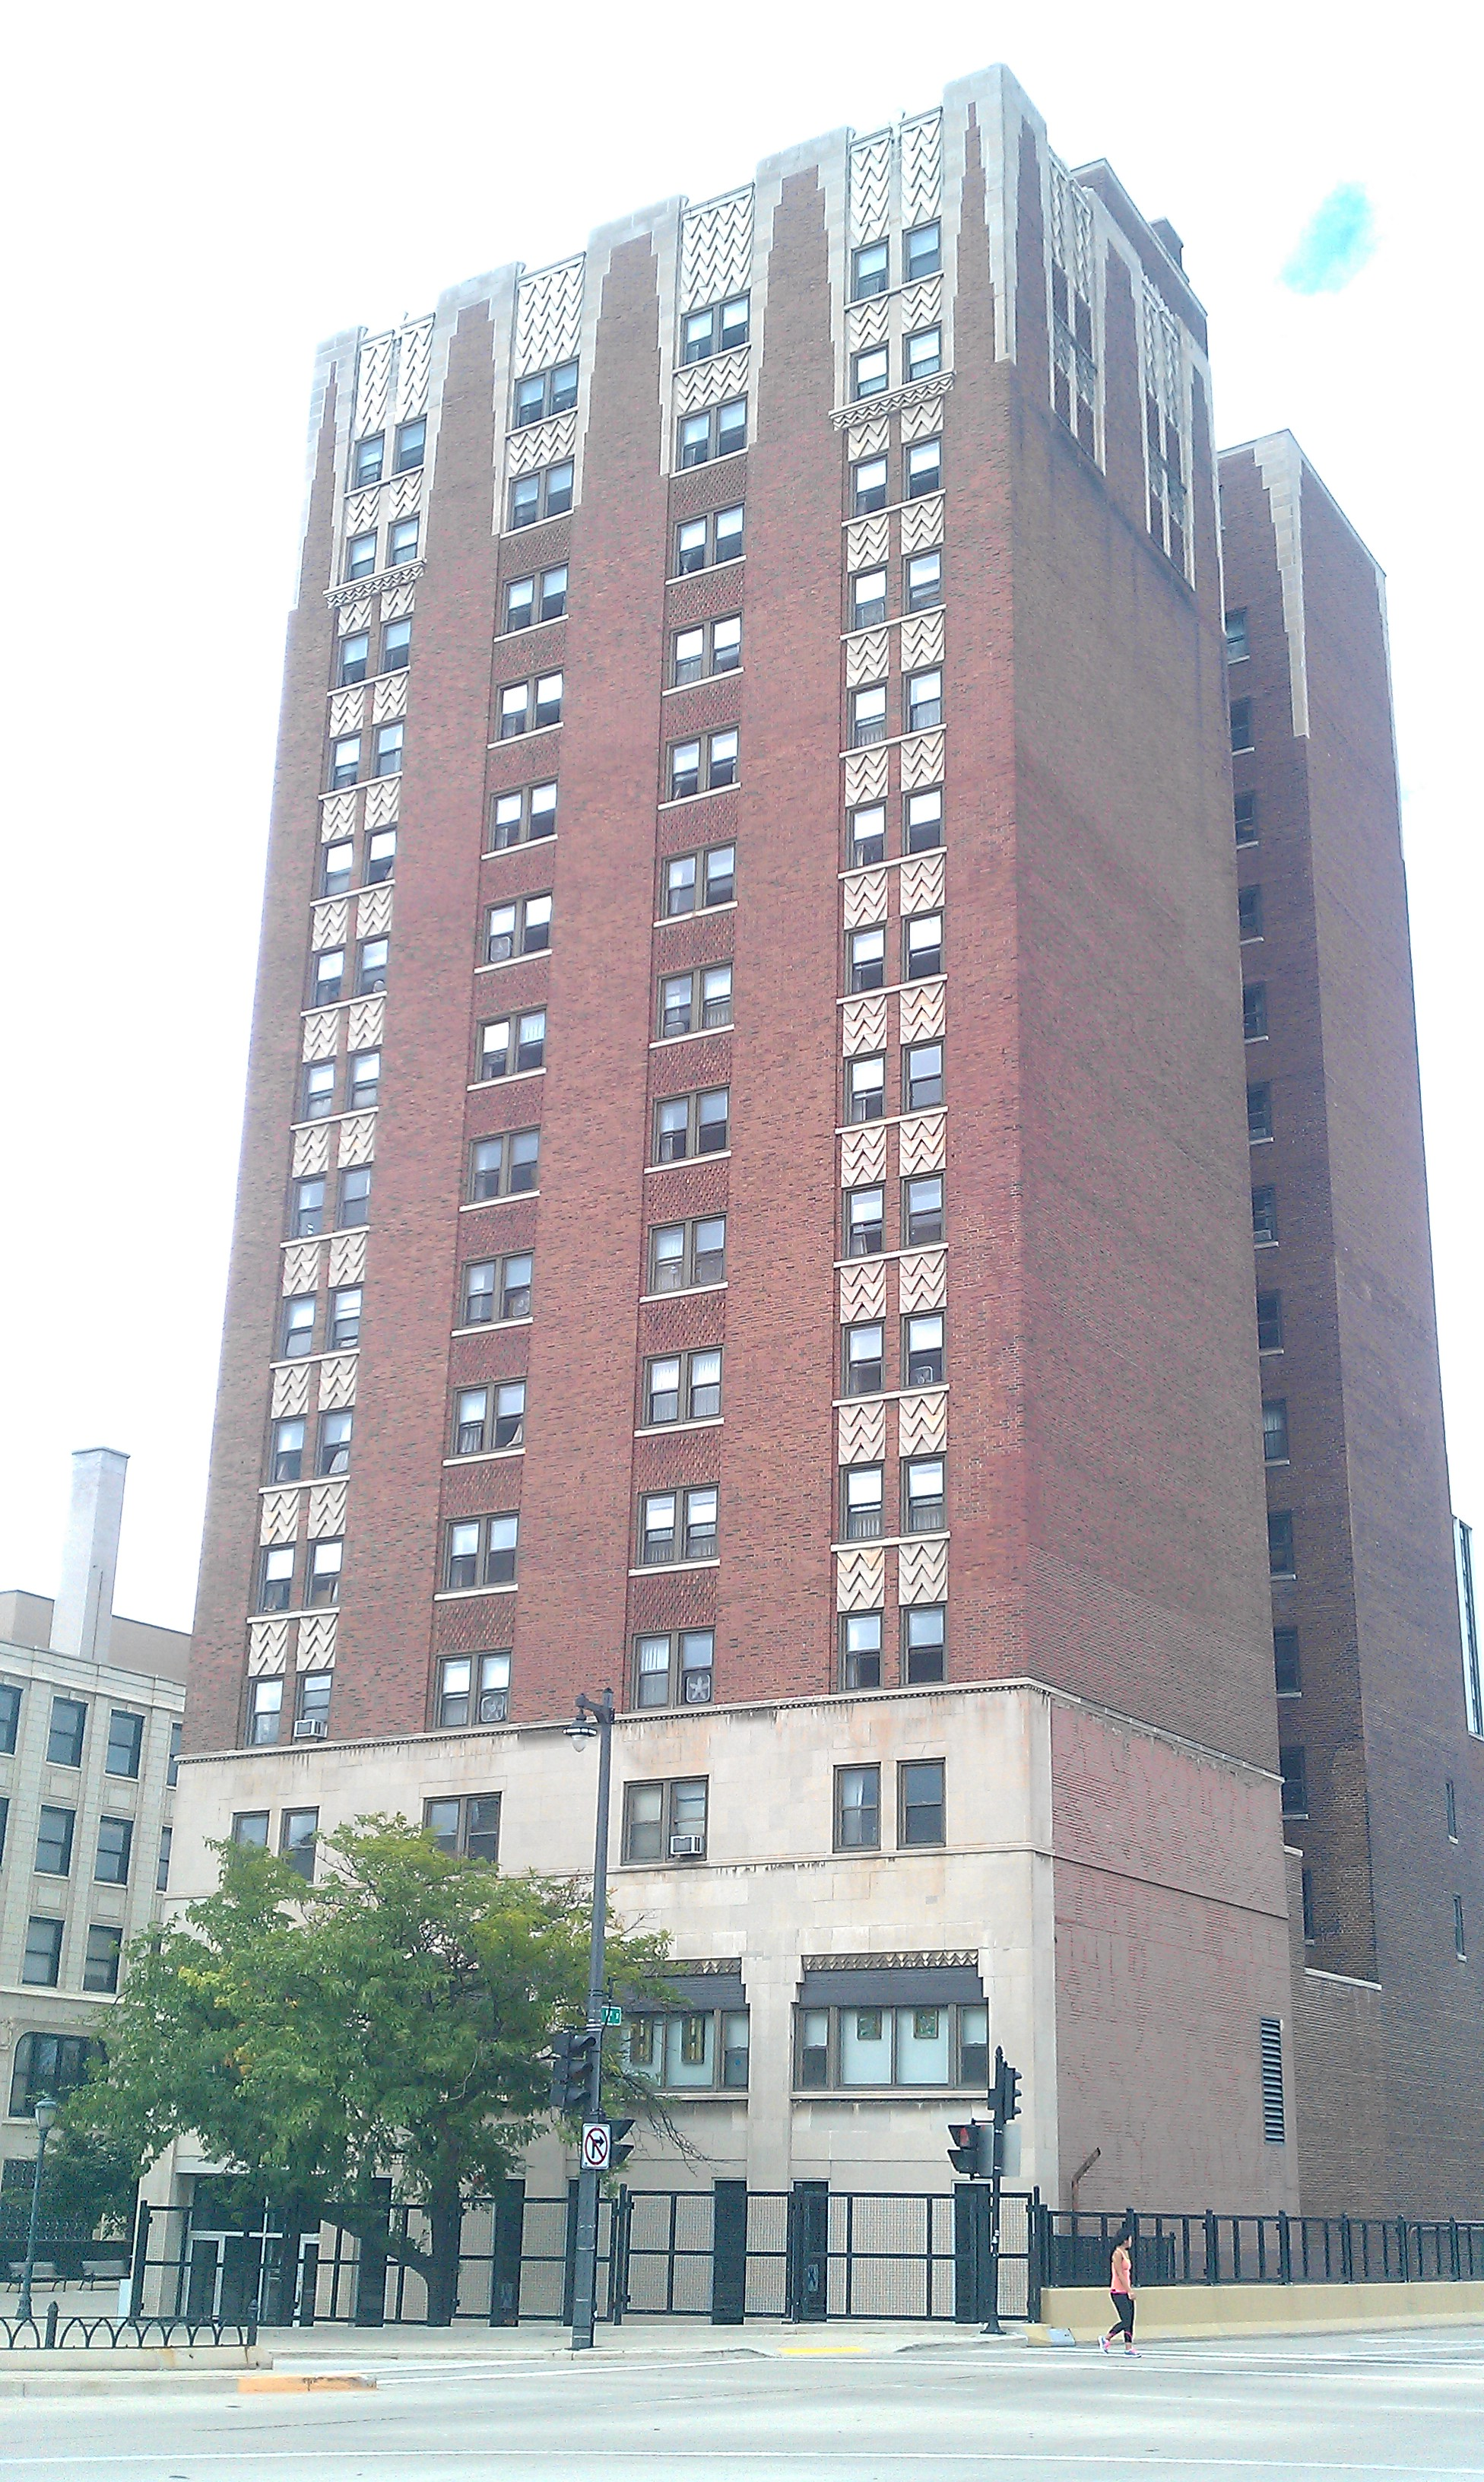 Carpenter Tower today (Photo courtesy of Wikimedia.org)